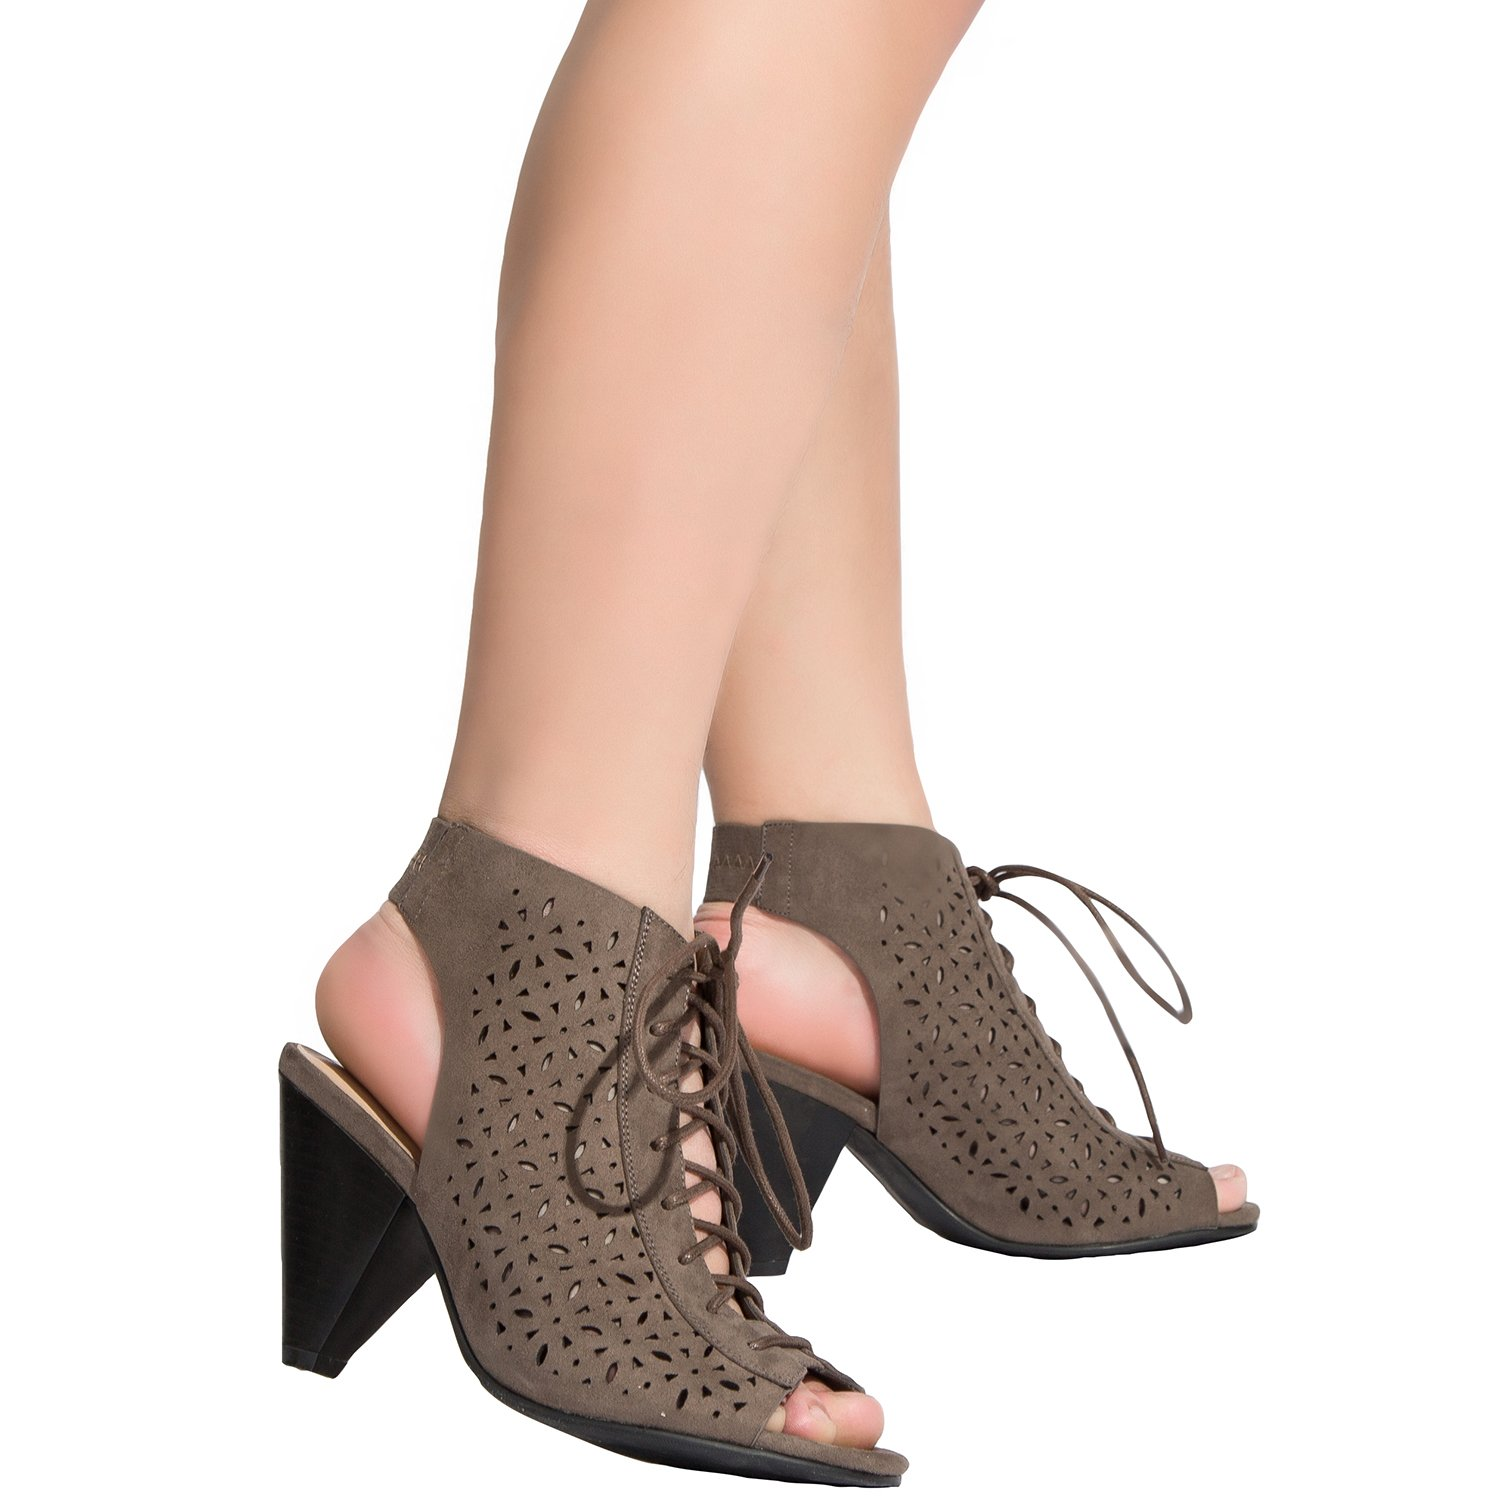 Women's Wide Width Heeled Sandals - Lace up Open Toe Elastic Ankle Strap Suede Boots Shoes.(Khaki,180327,Size13)